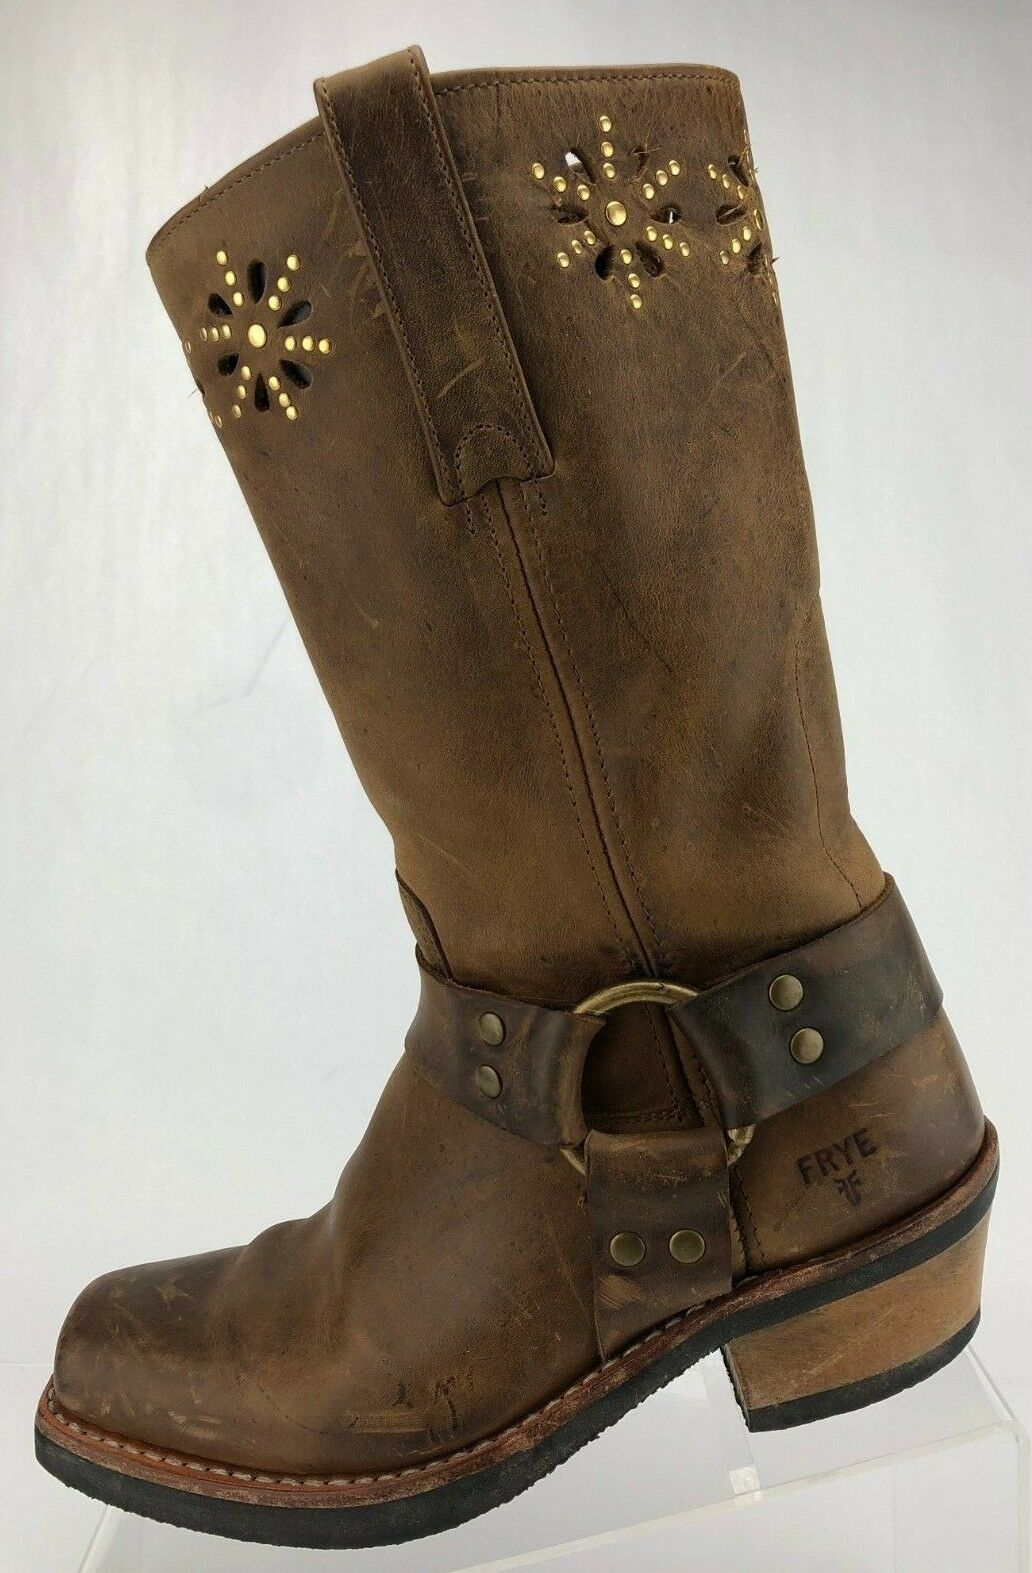 Frye Harness Motorcycle Boots Brown Leather Pull On Studded Mid Calf Womens 6.5M